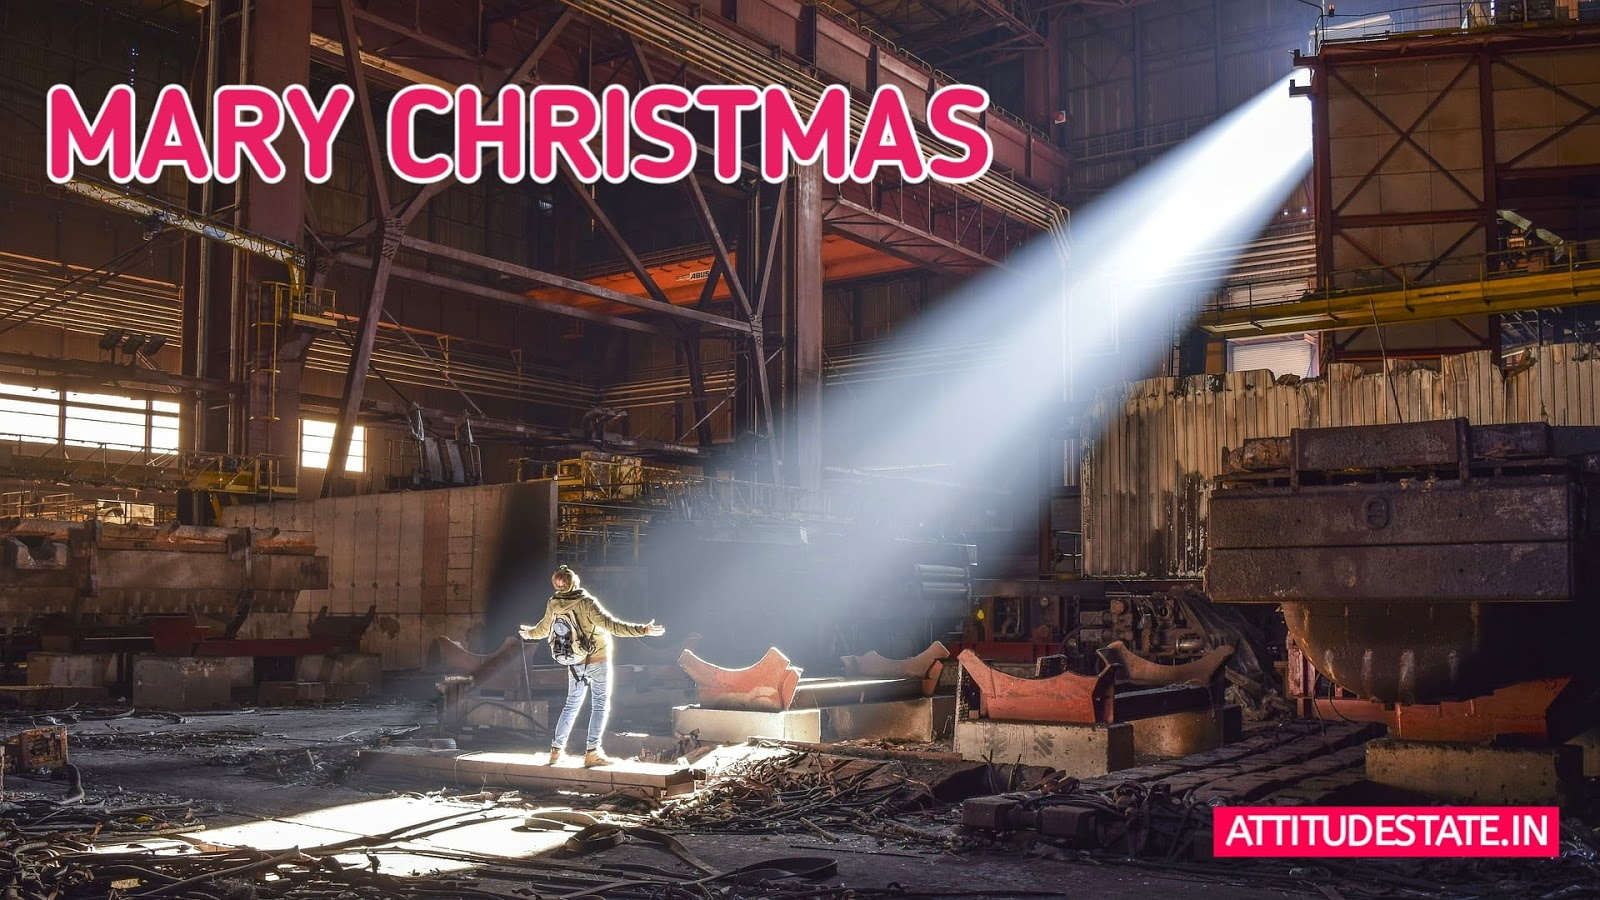 Best Merry Christmas Images, Pictures, Pic, Wishes #ATTITUDESTATE